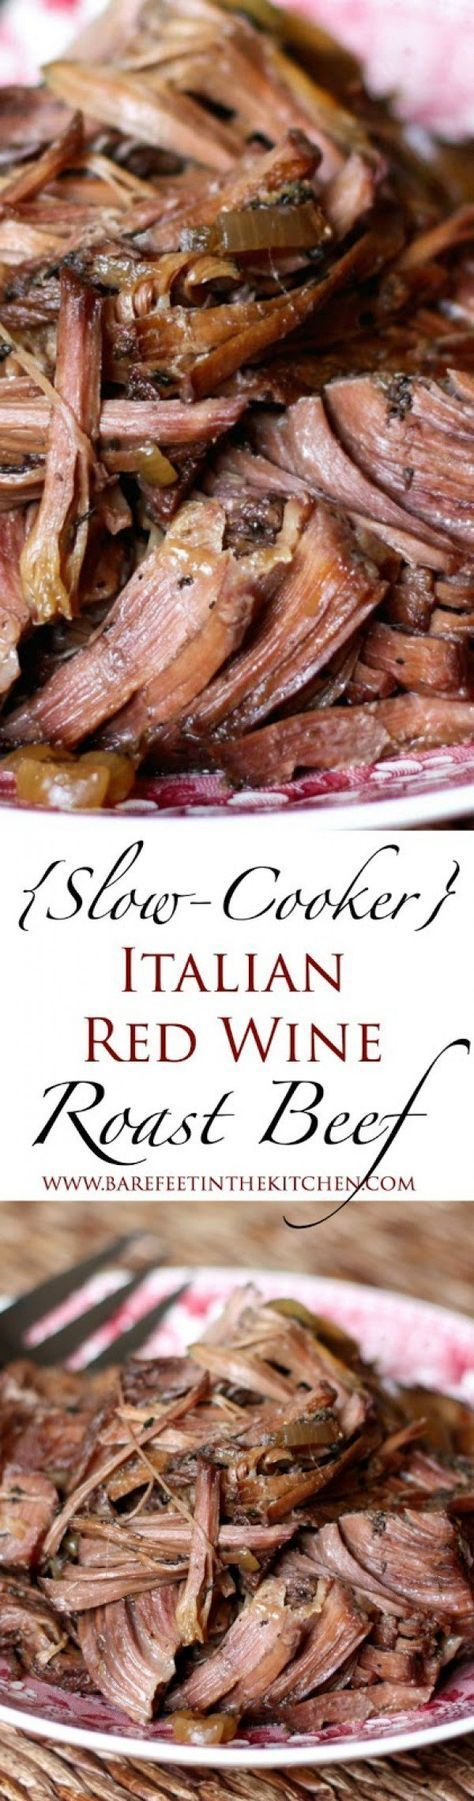 Get the recipe ♥ Slow Cooker Italian Red Wine Roast Beef @istandarddesign